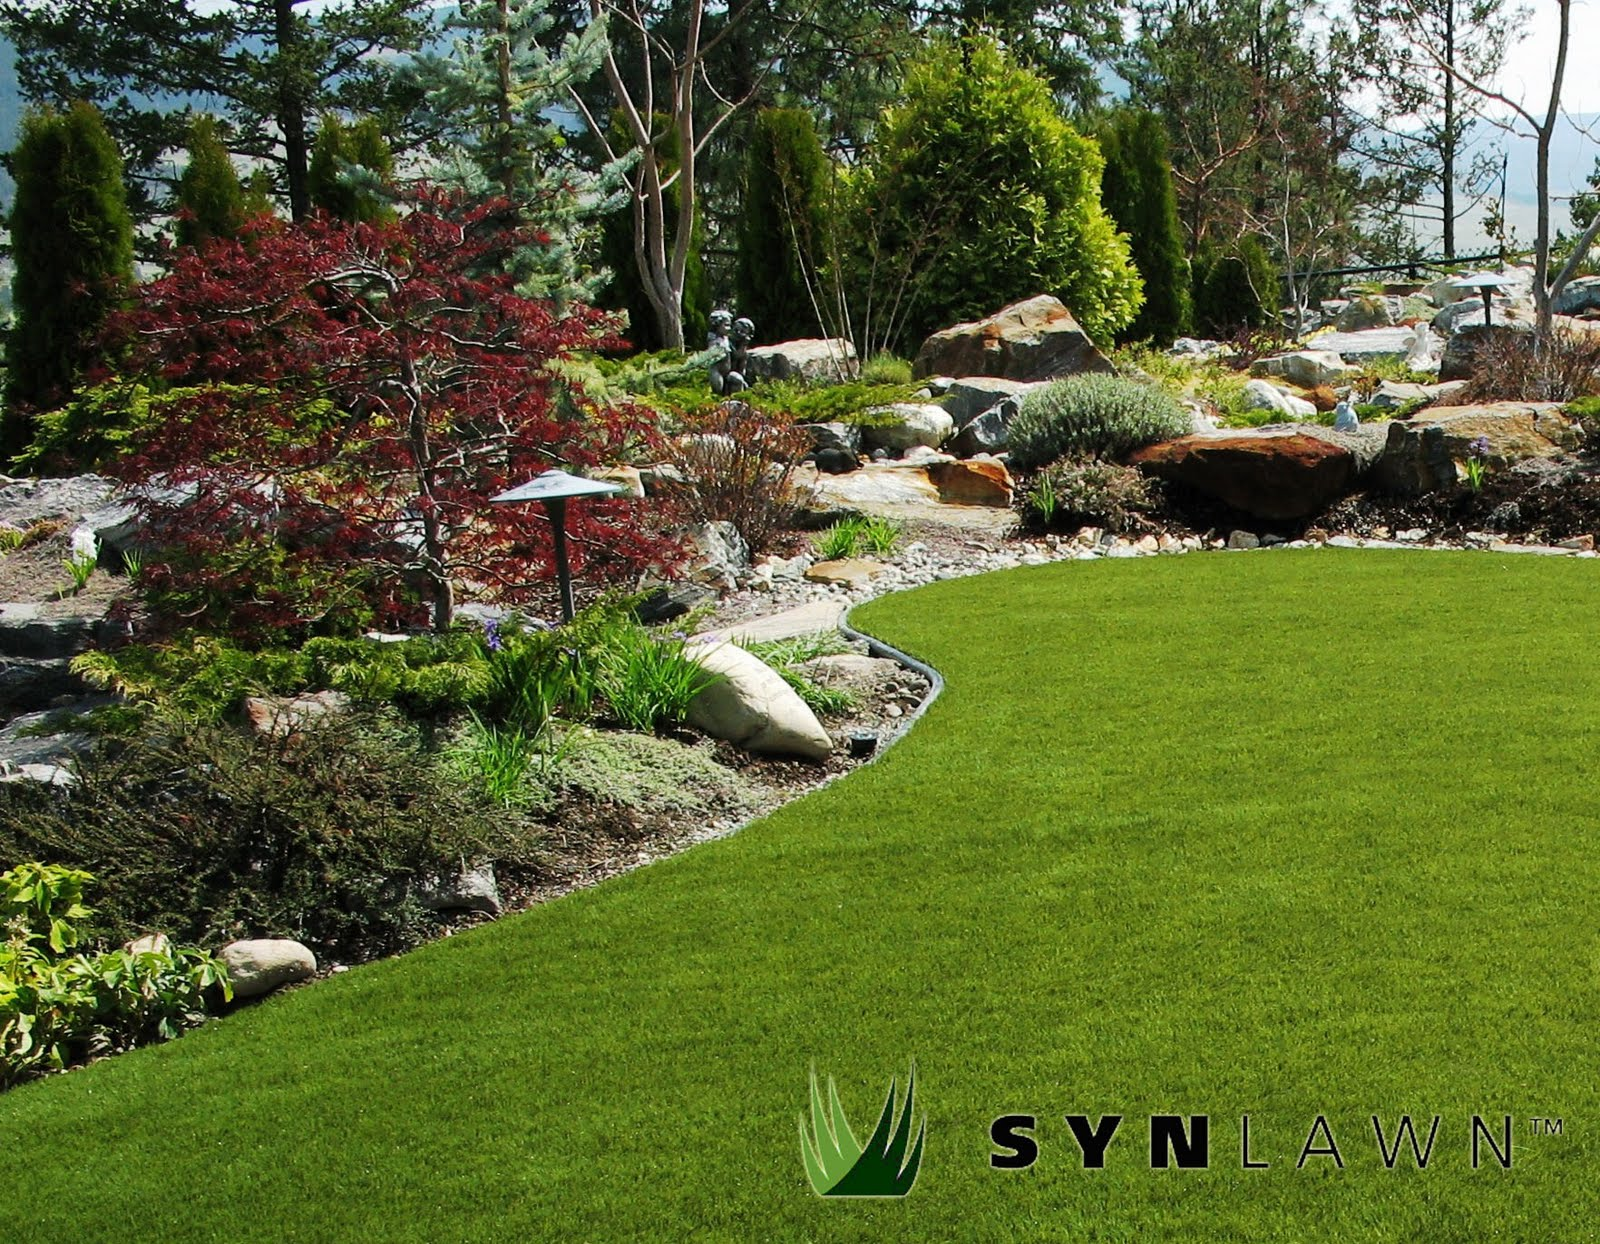 Synlawn okanagan save water with synlawn for Residential landscaping